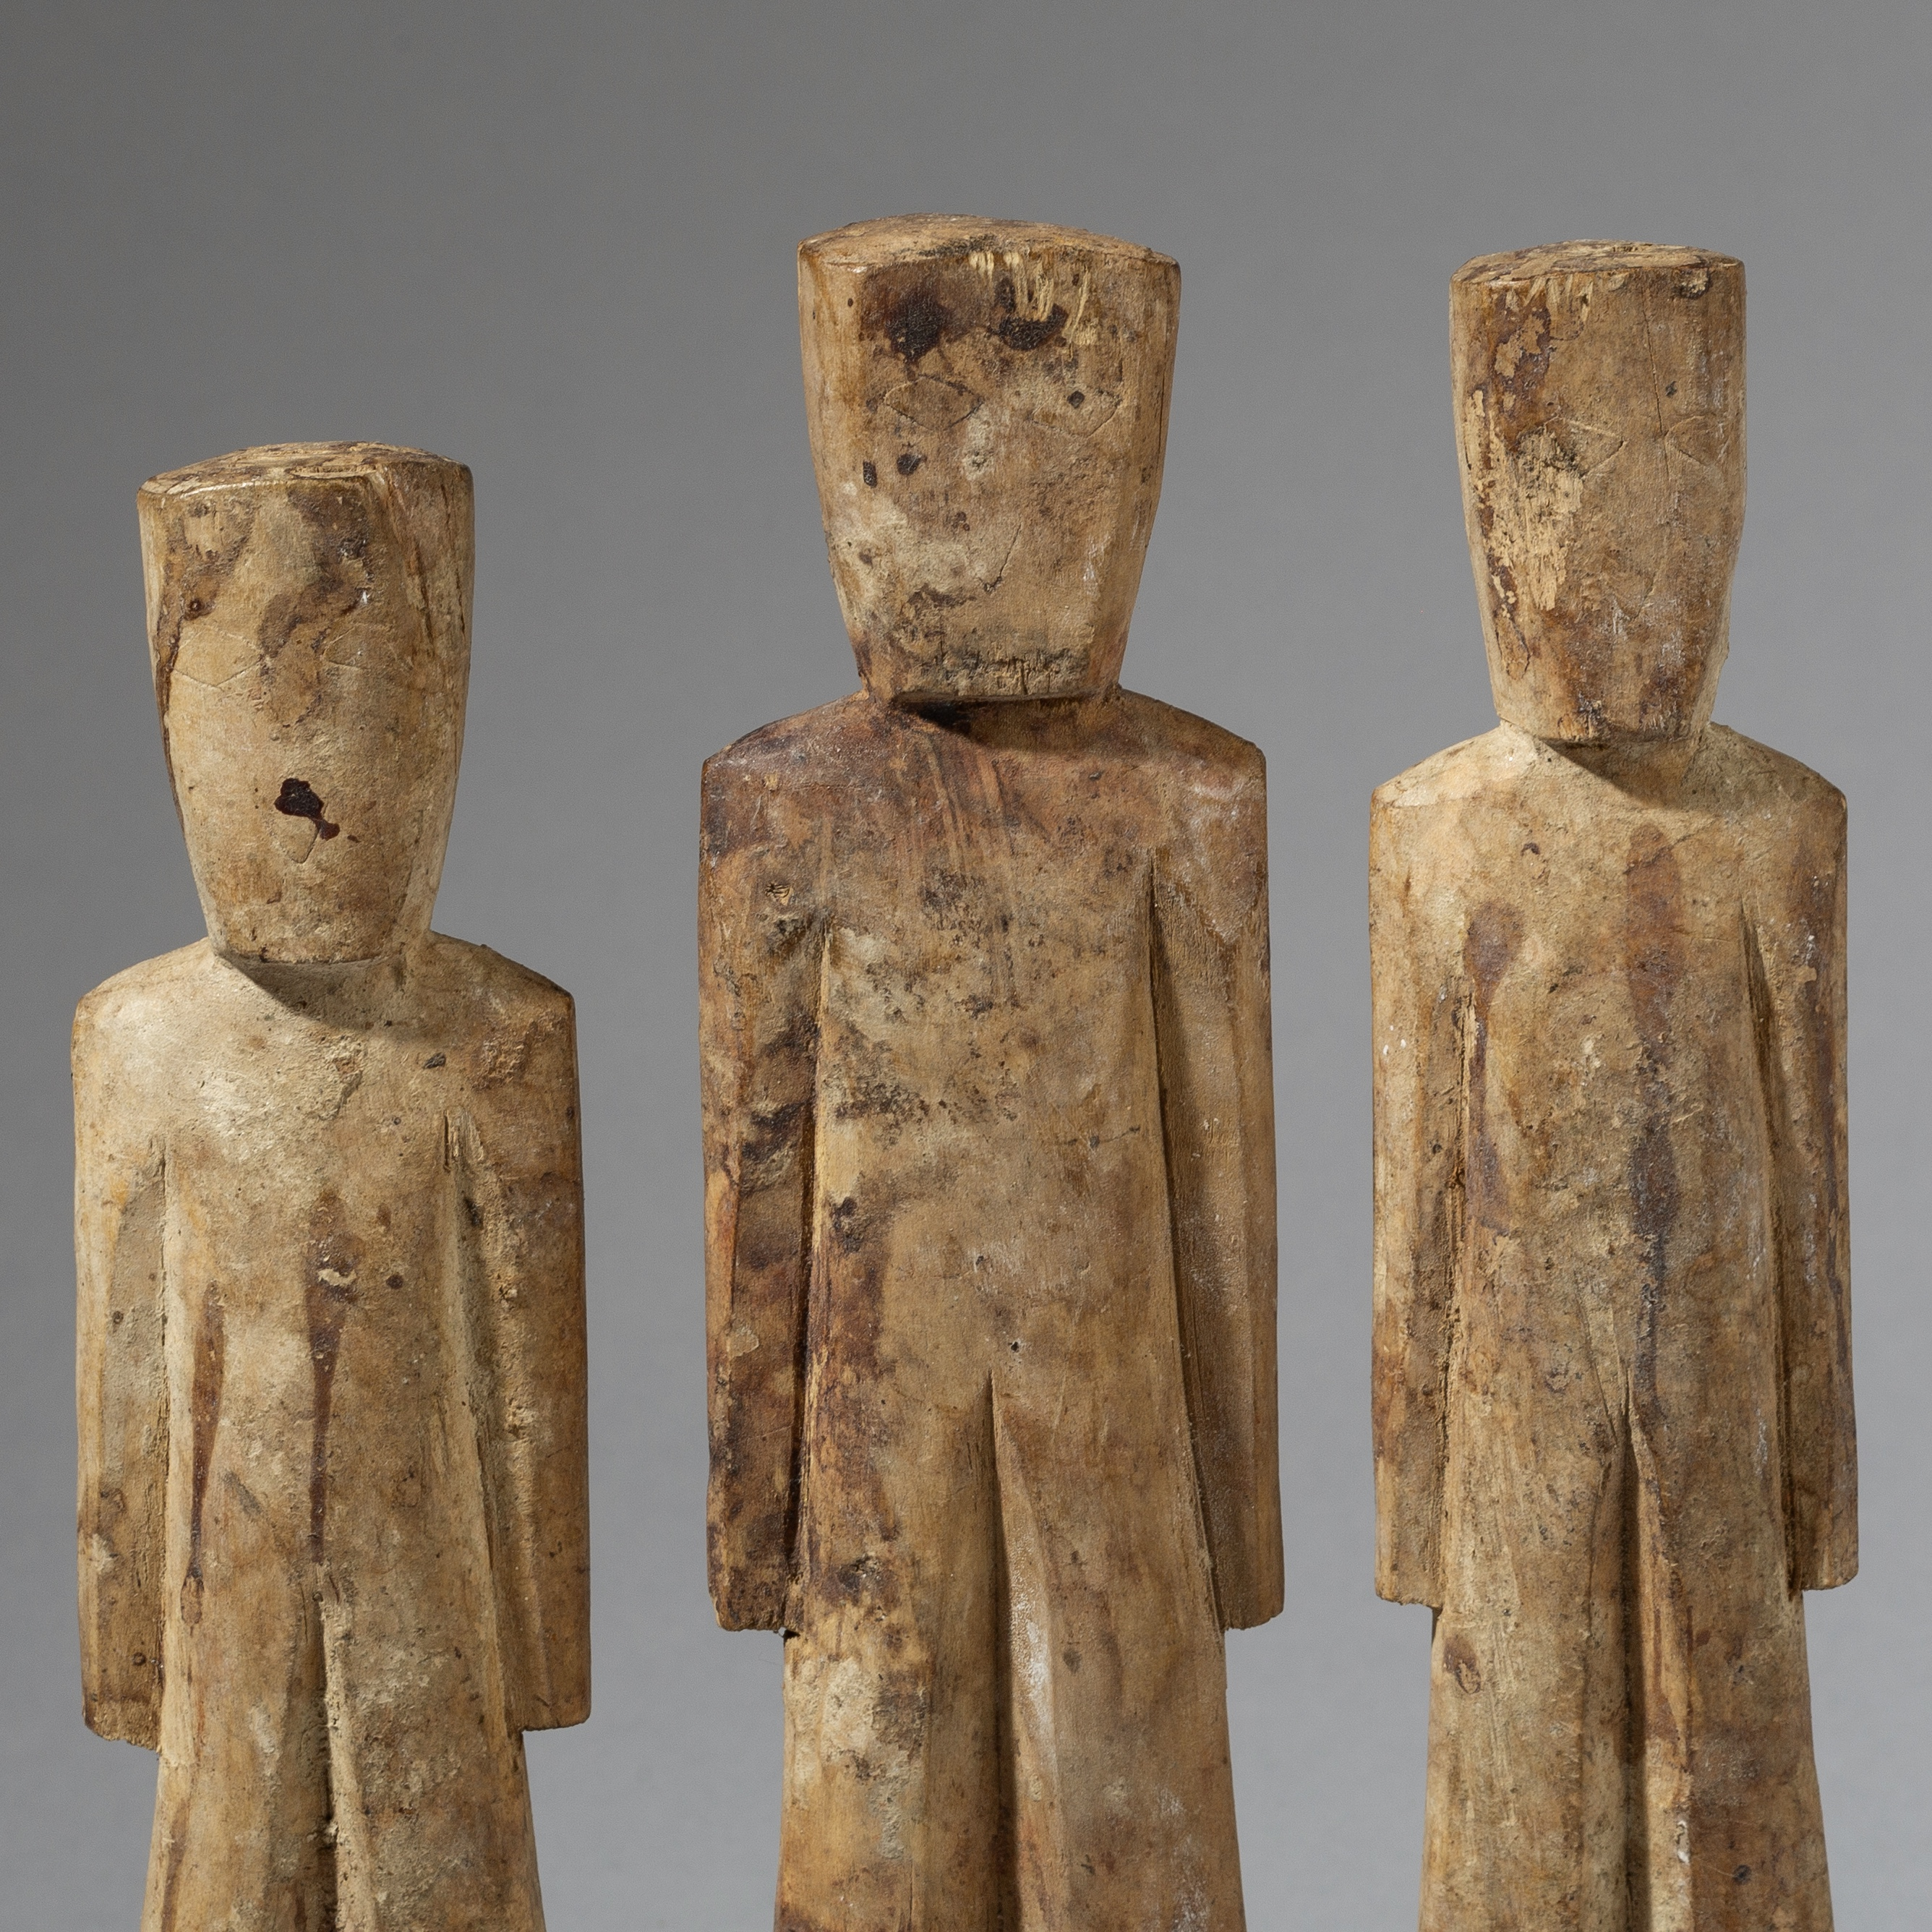 SD A CUBIST SET OF 3 ADAN STATUES FROM GHANA ( No 2783 )